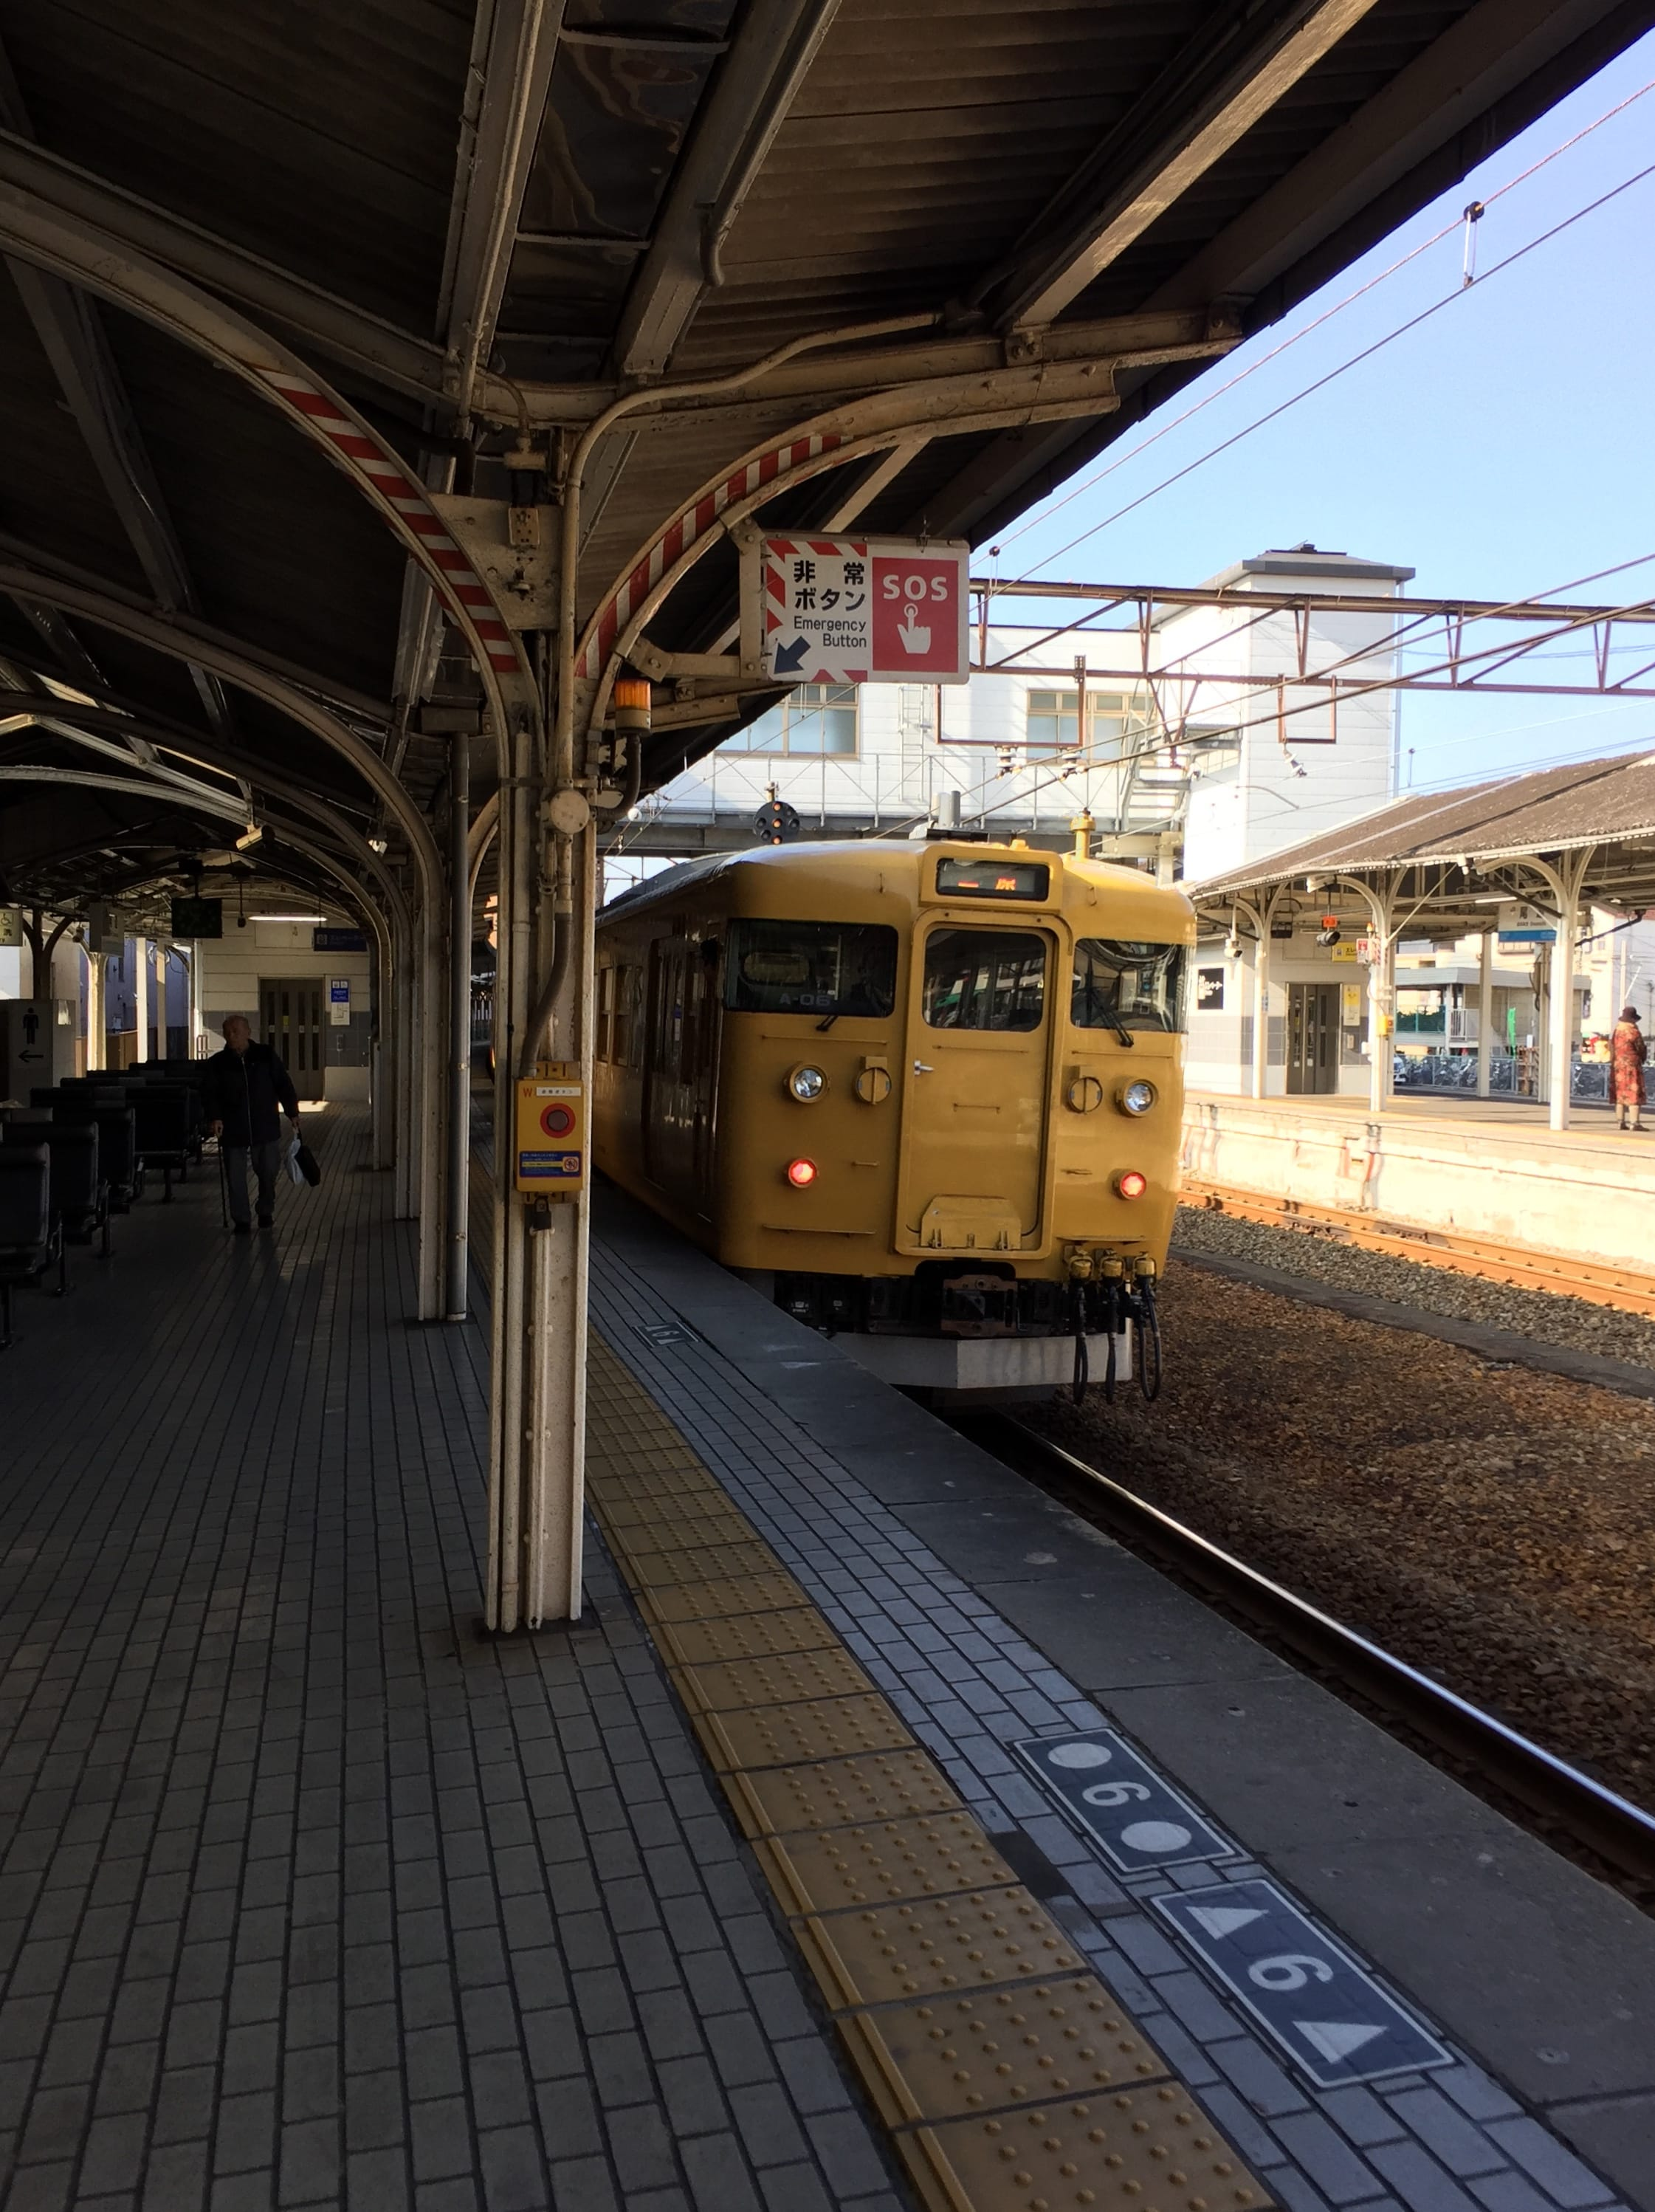 Arrived at Onomichi Station on local JR train from Fukuyama Station